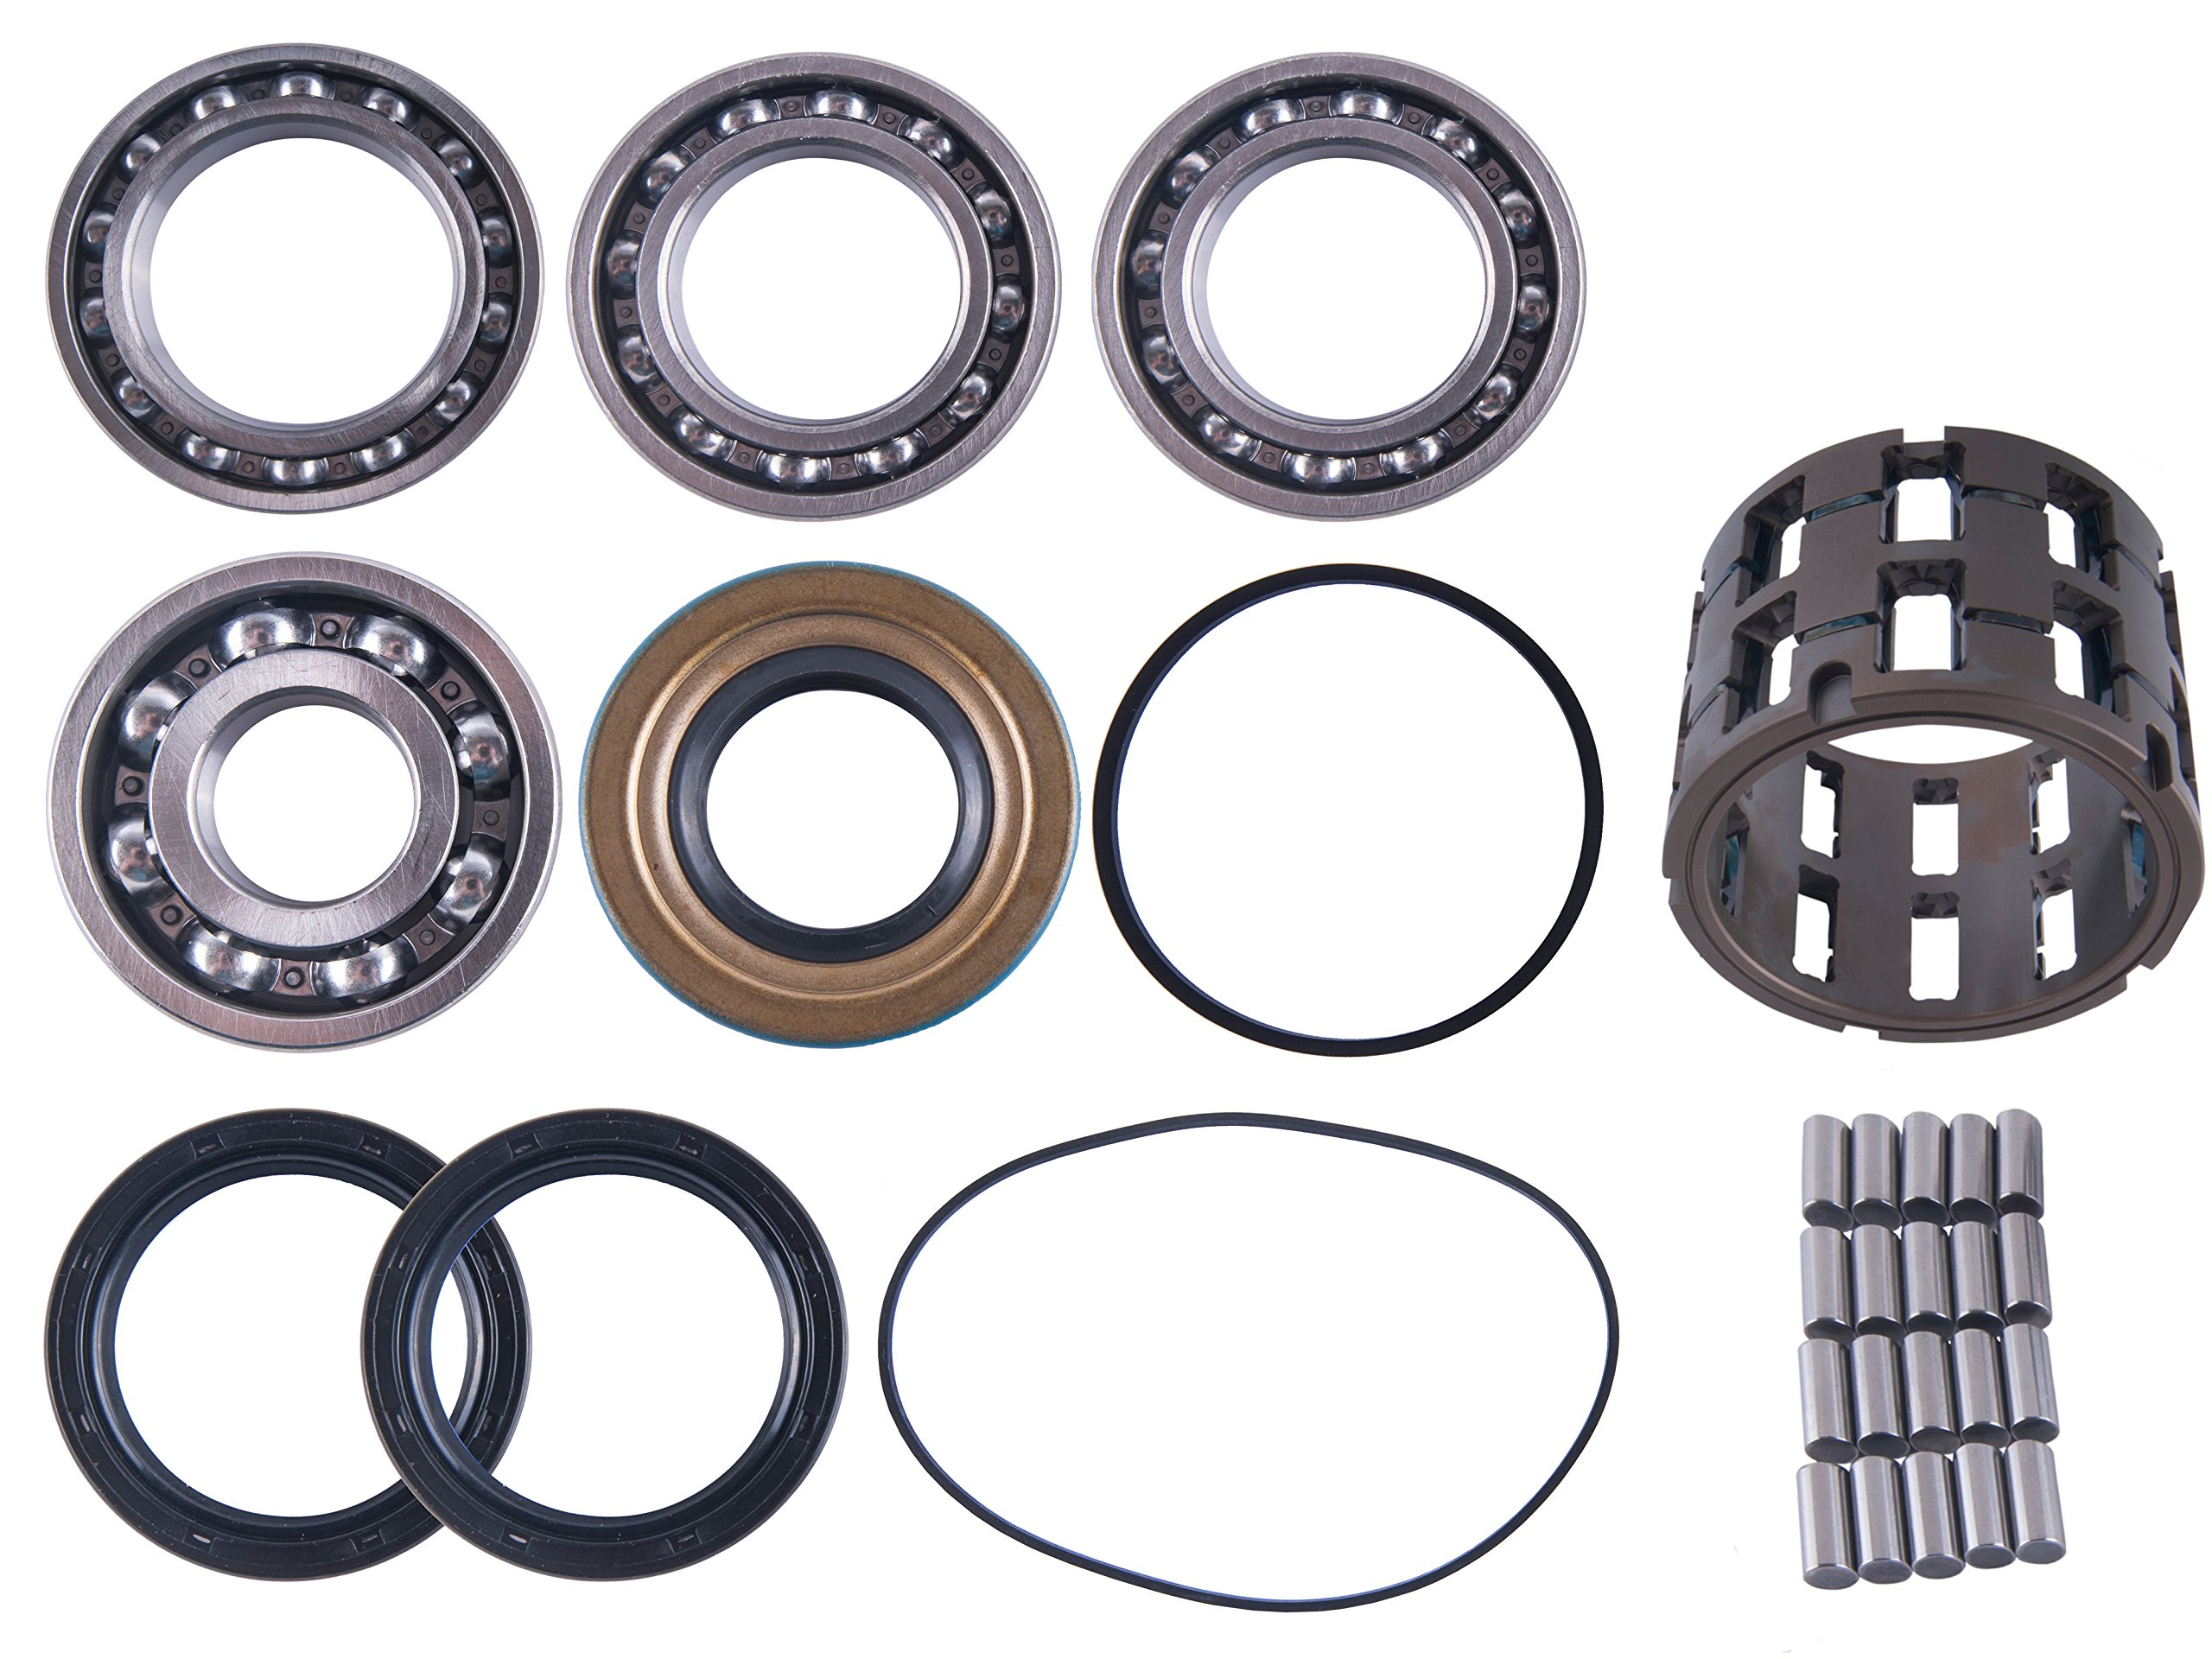 Polaris Magnum / ATP front differential kit with Sprague carrier 330 / 500 2002 2003 2004 2005 2006